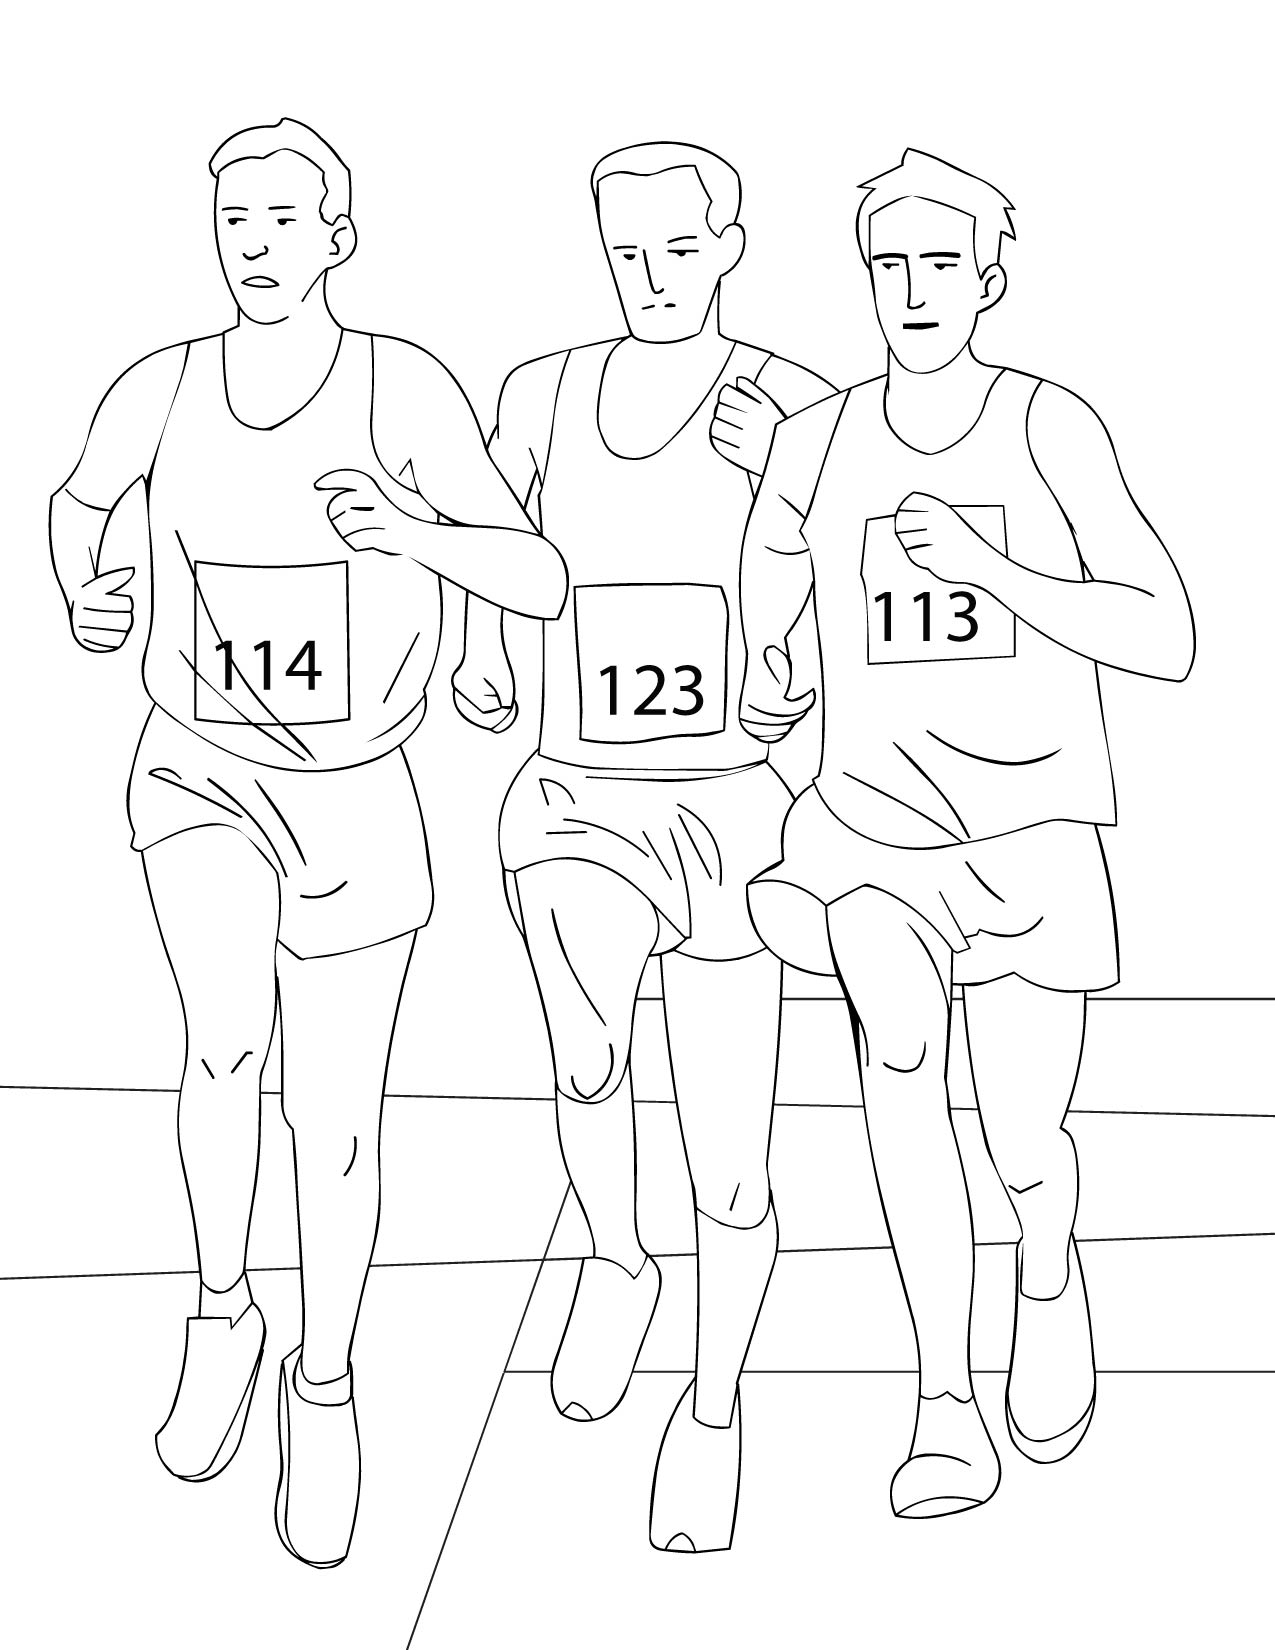 5k coloring page handipoints